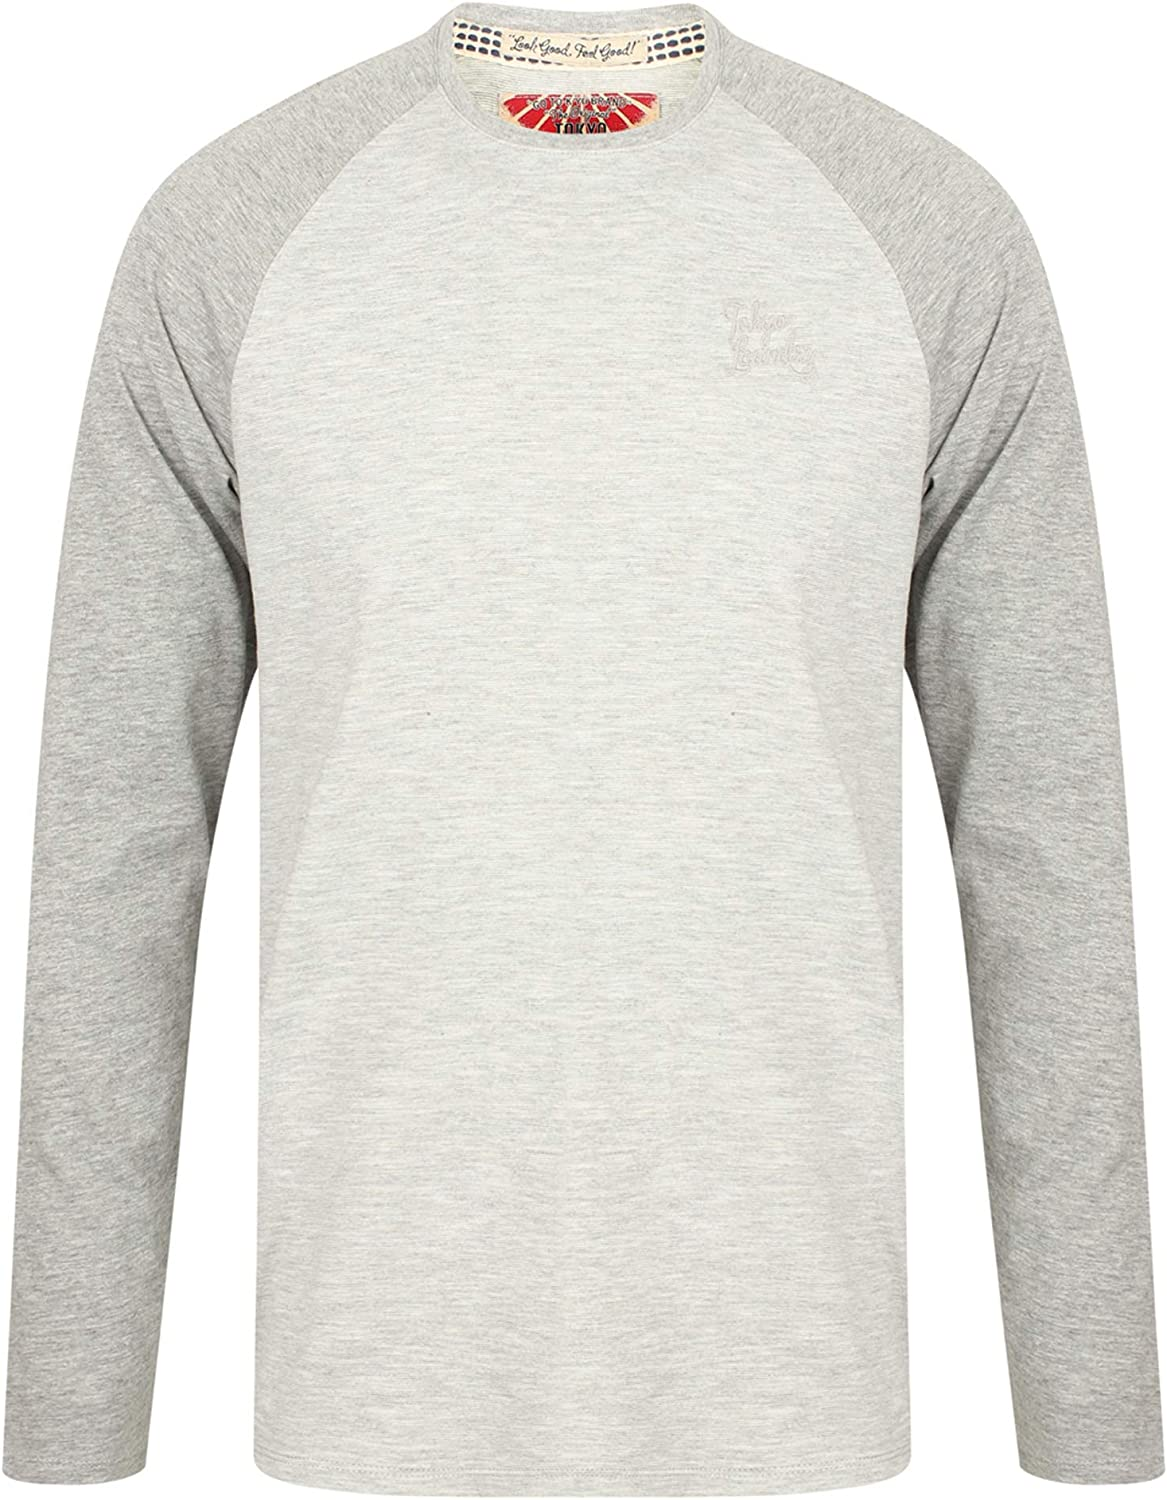 Tokyo Laundry Mens Long Sleeved Jersey Top Harwood